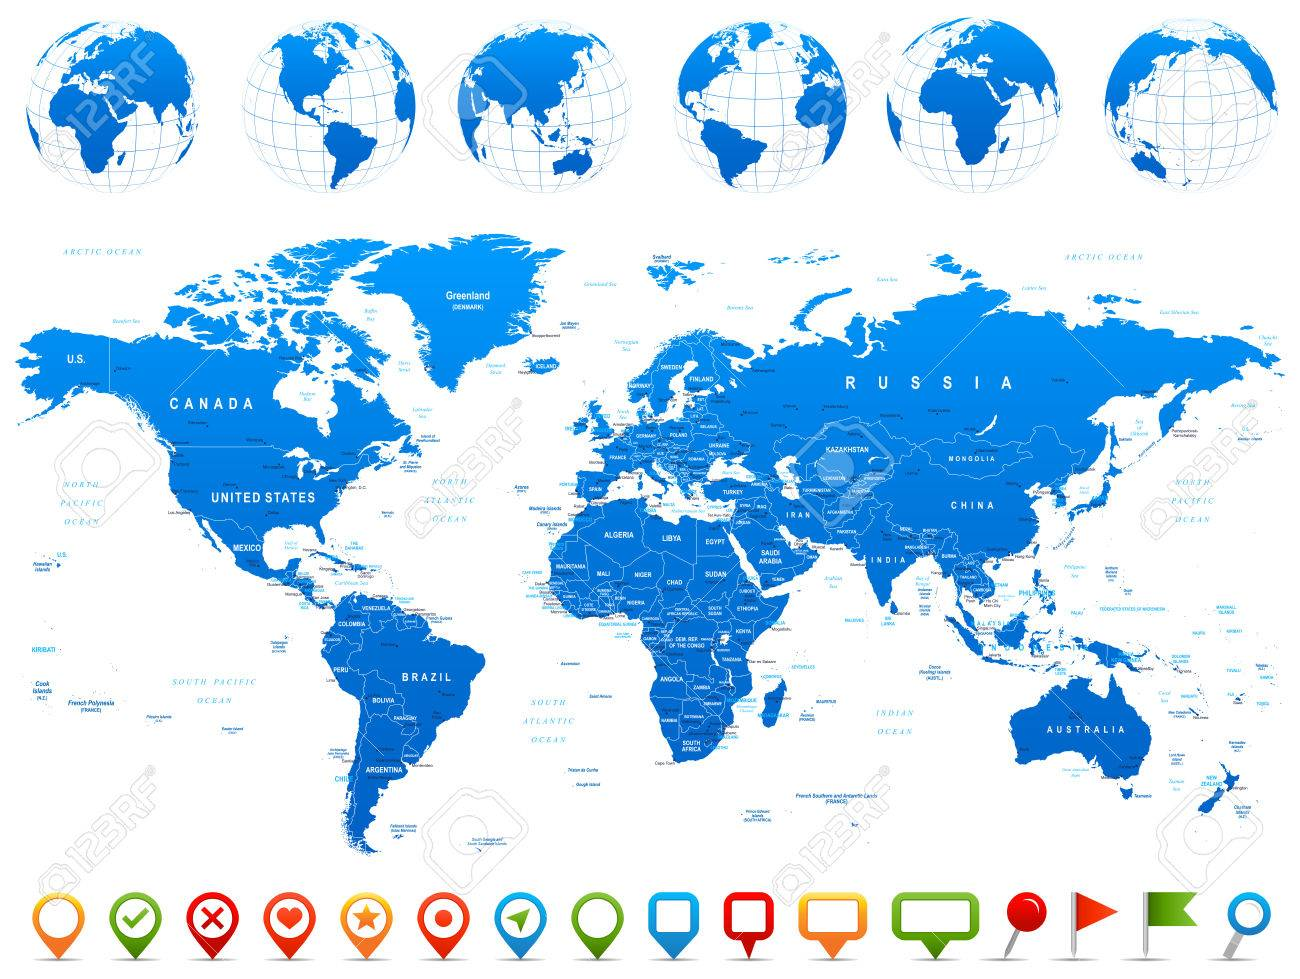 World Map Globes Continents Navigation Icons Illustration - Argentina map continent